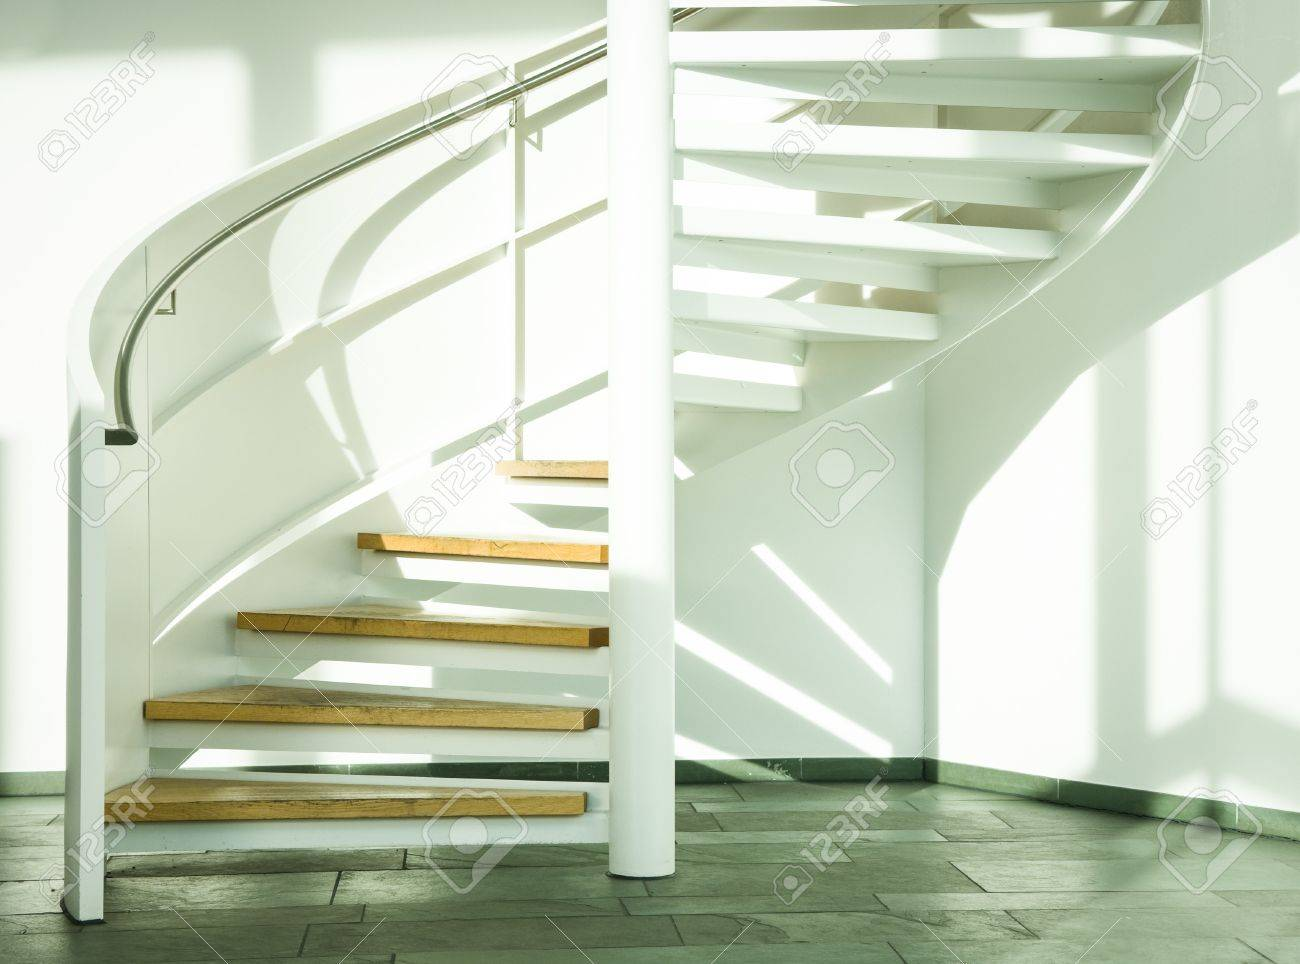 spiral staircase at a modern office building Stock Photo - 18155330